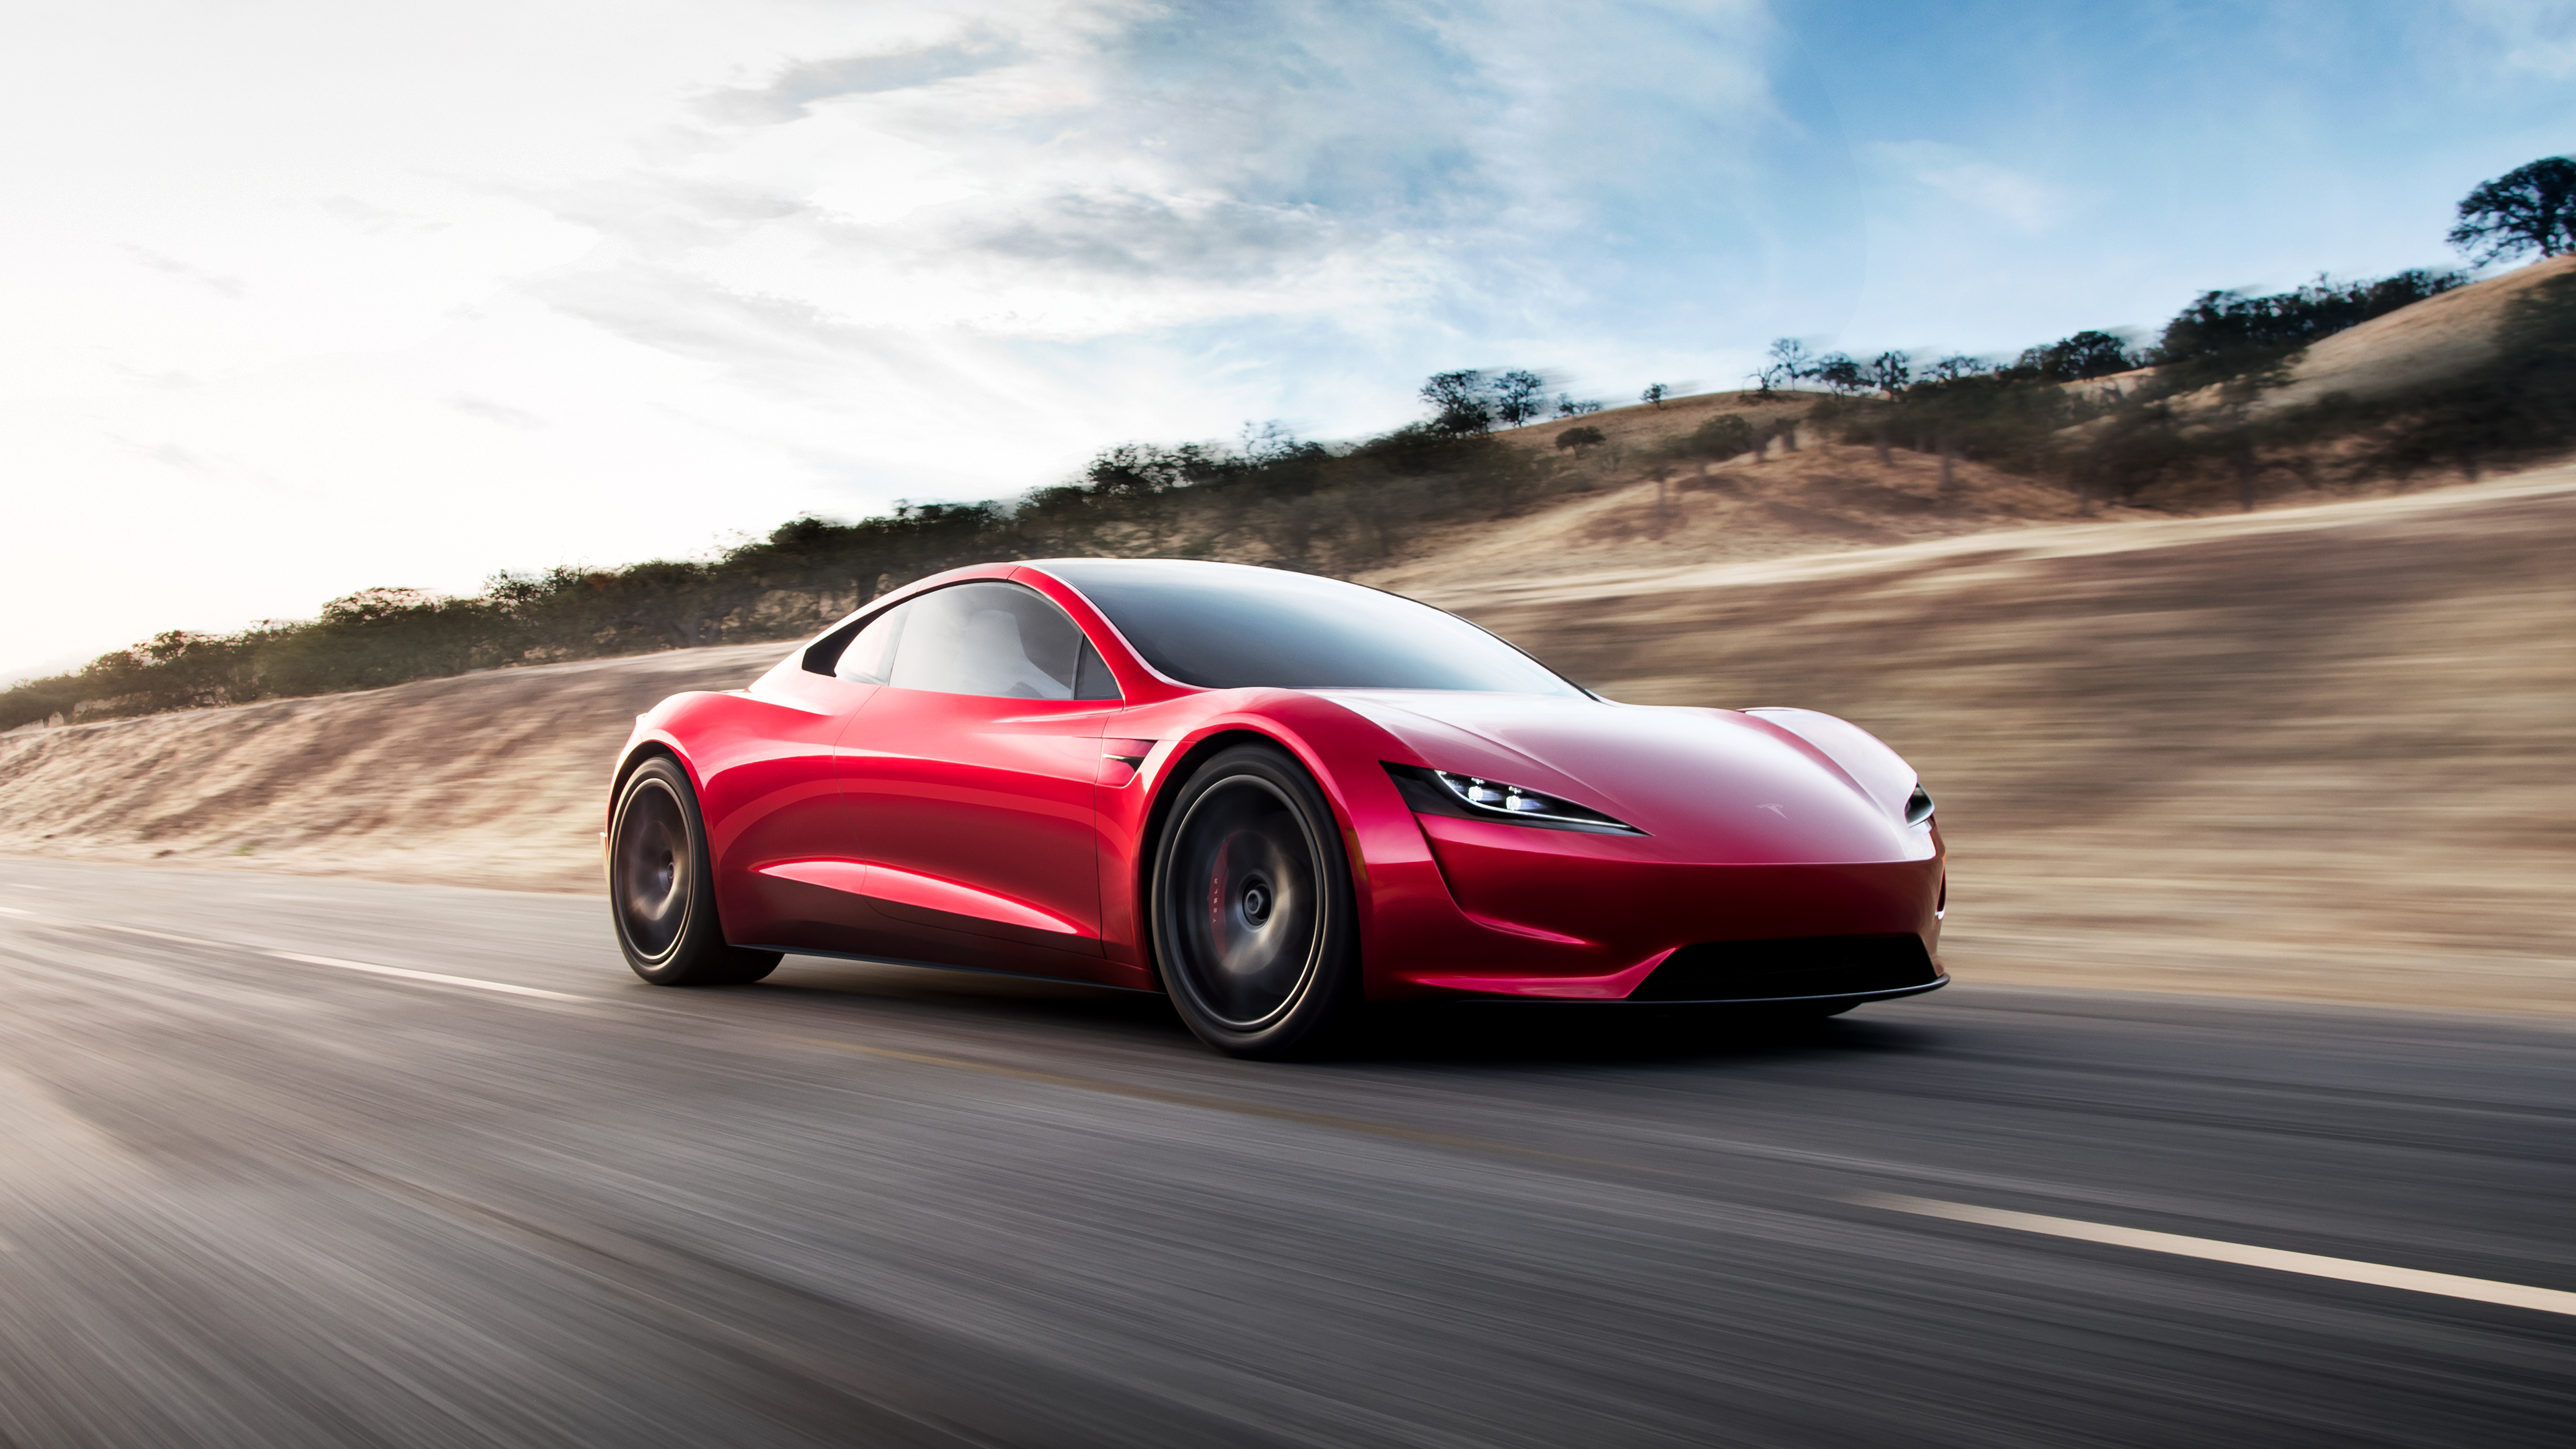 tesla roadster electric supercar 4k hd wallpaper 3840x2160